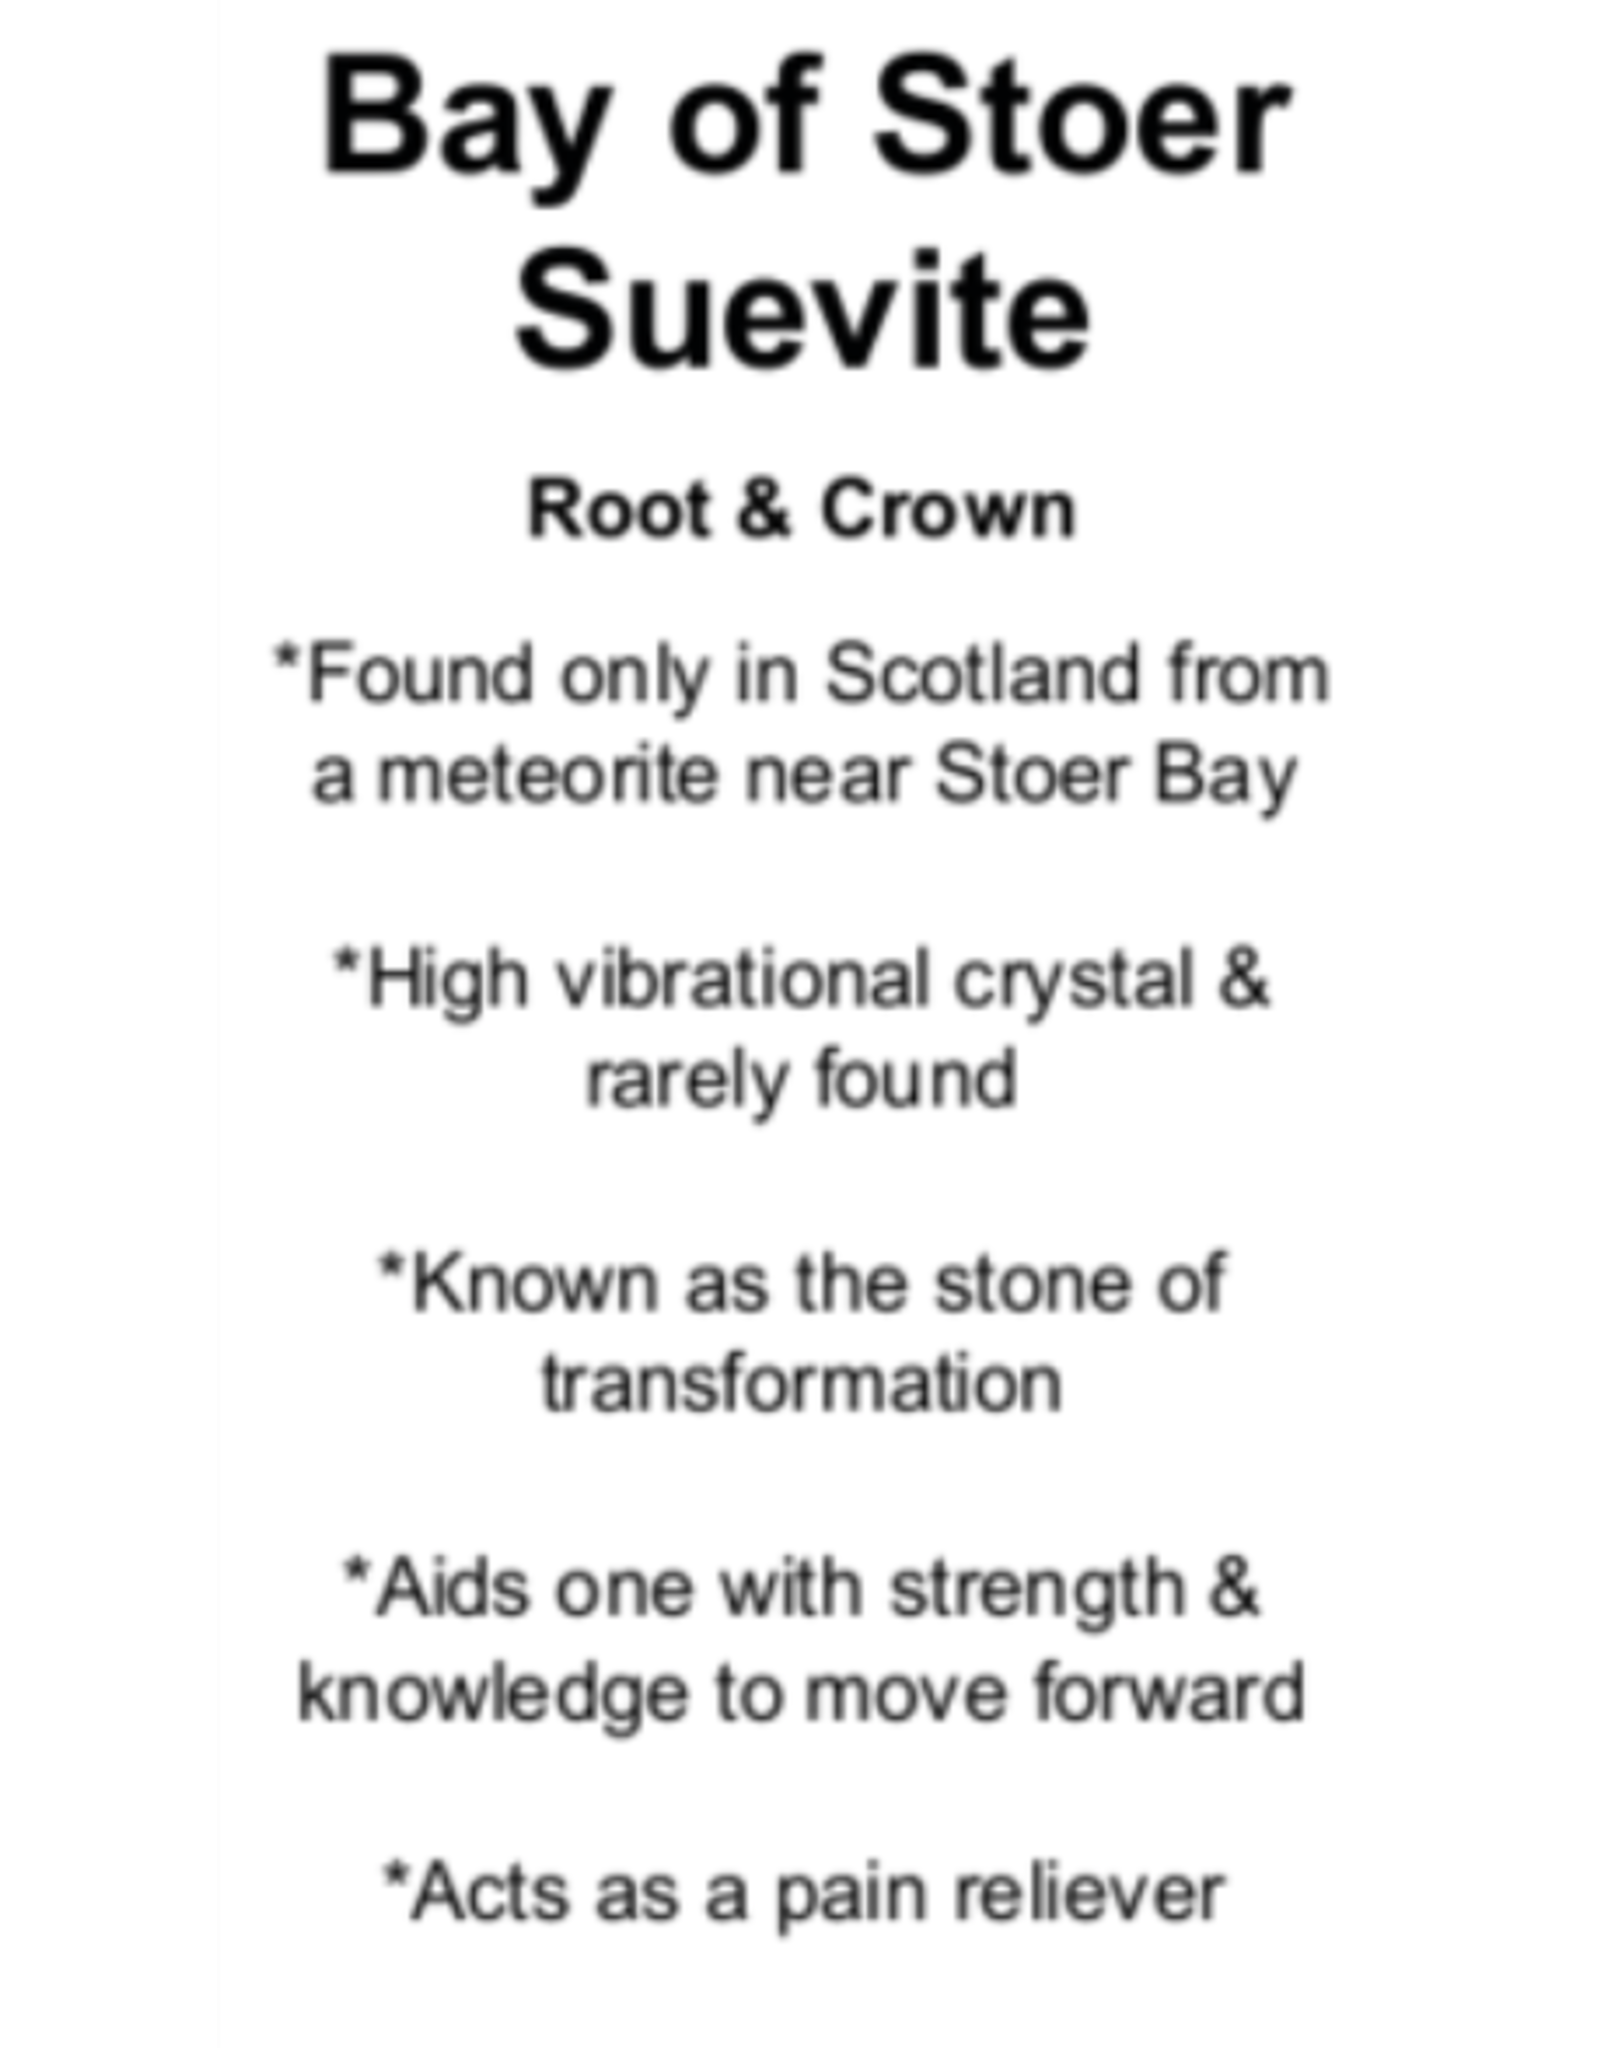 Bay of Store Suevite - Card